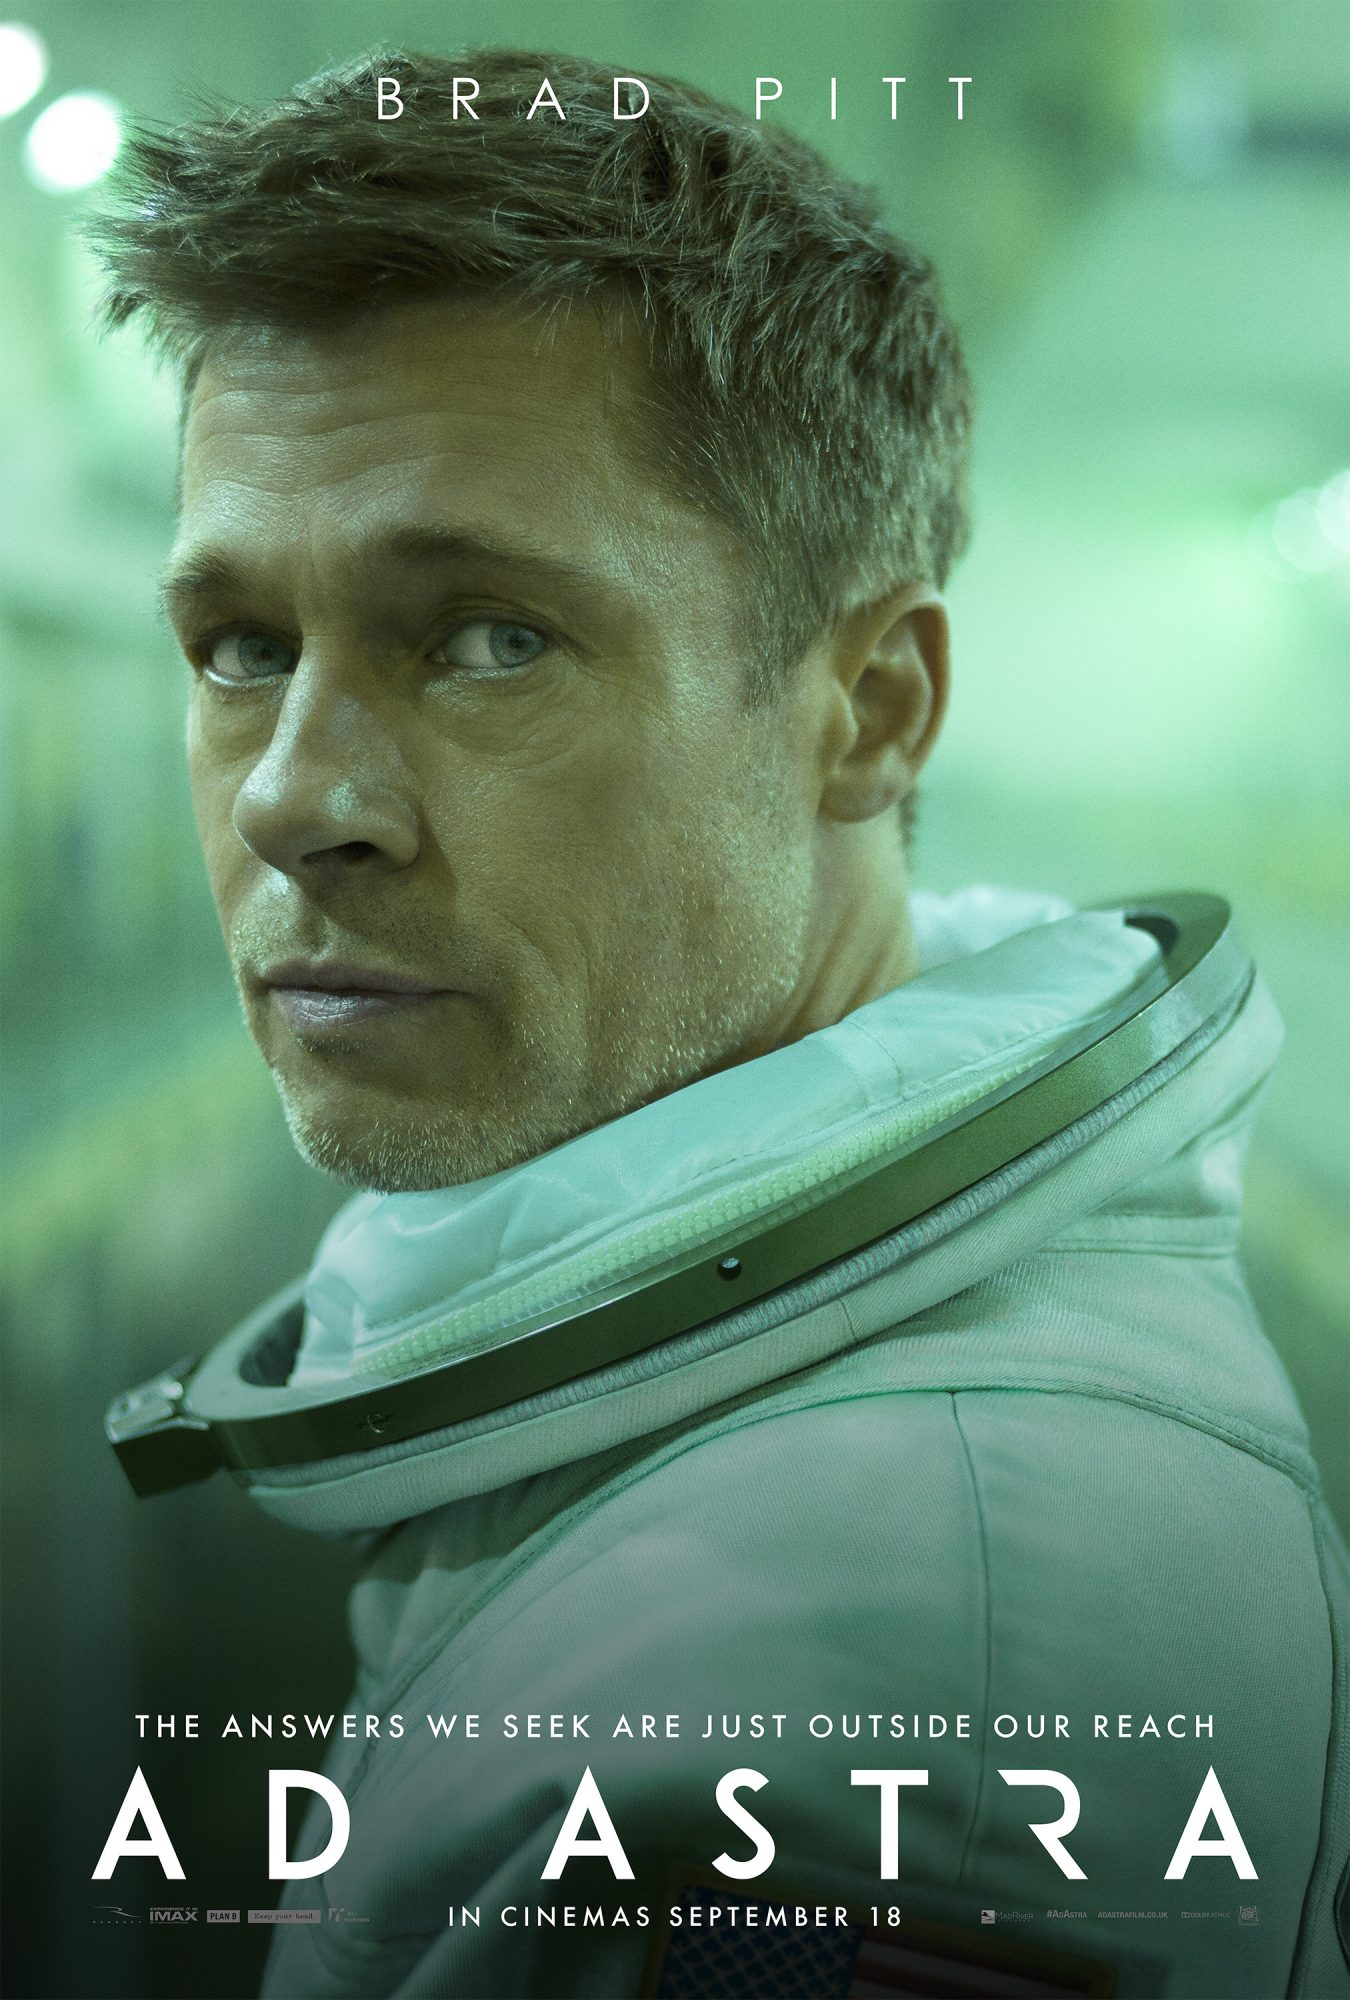 Ad Astra Review - starring Brad Pitt